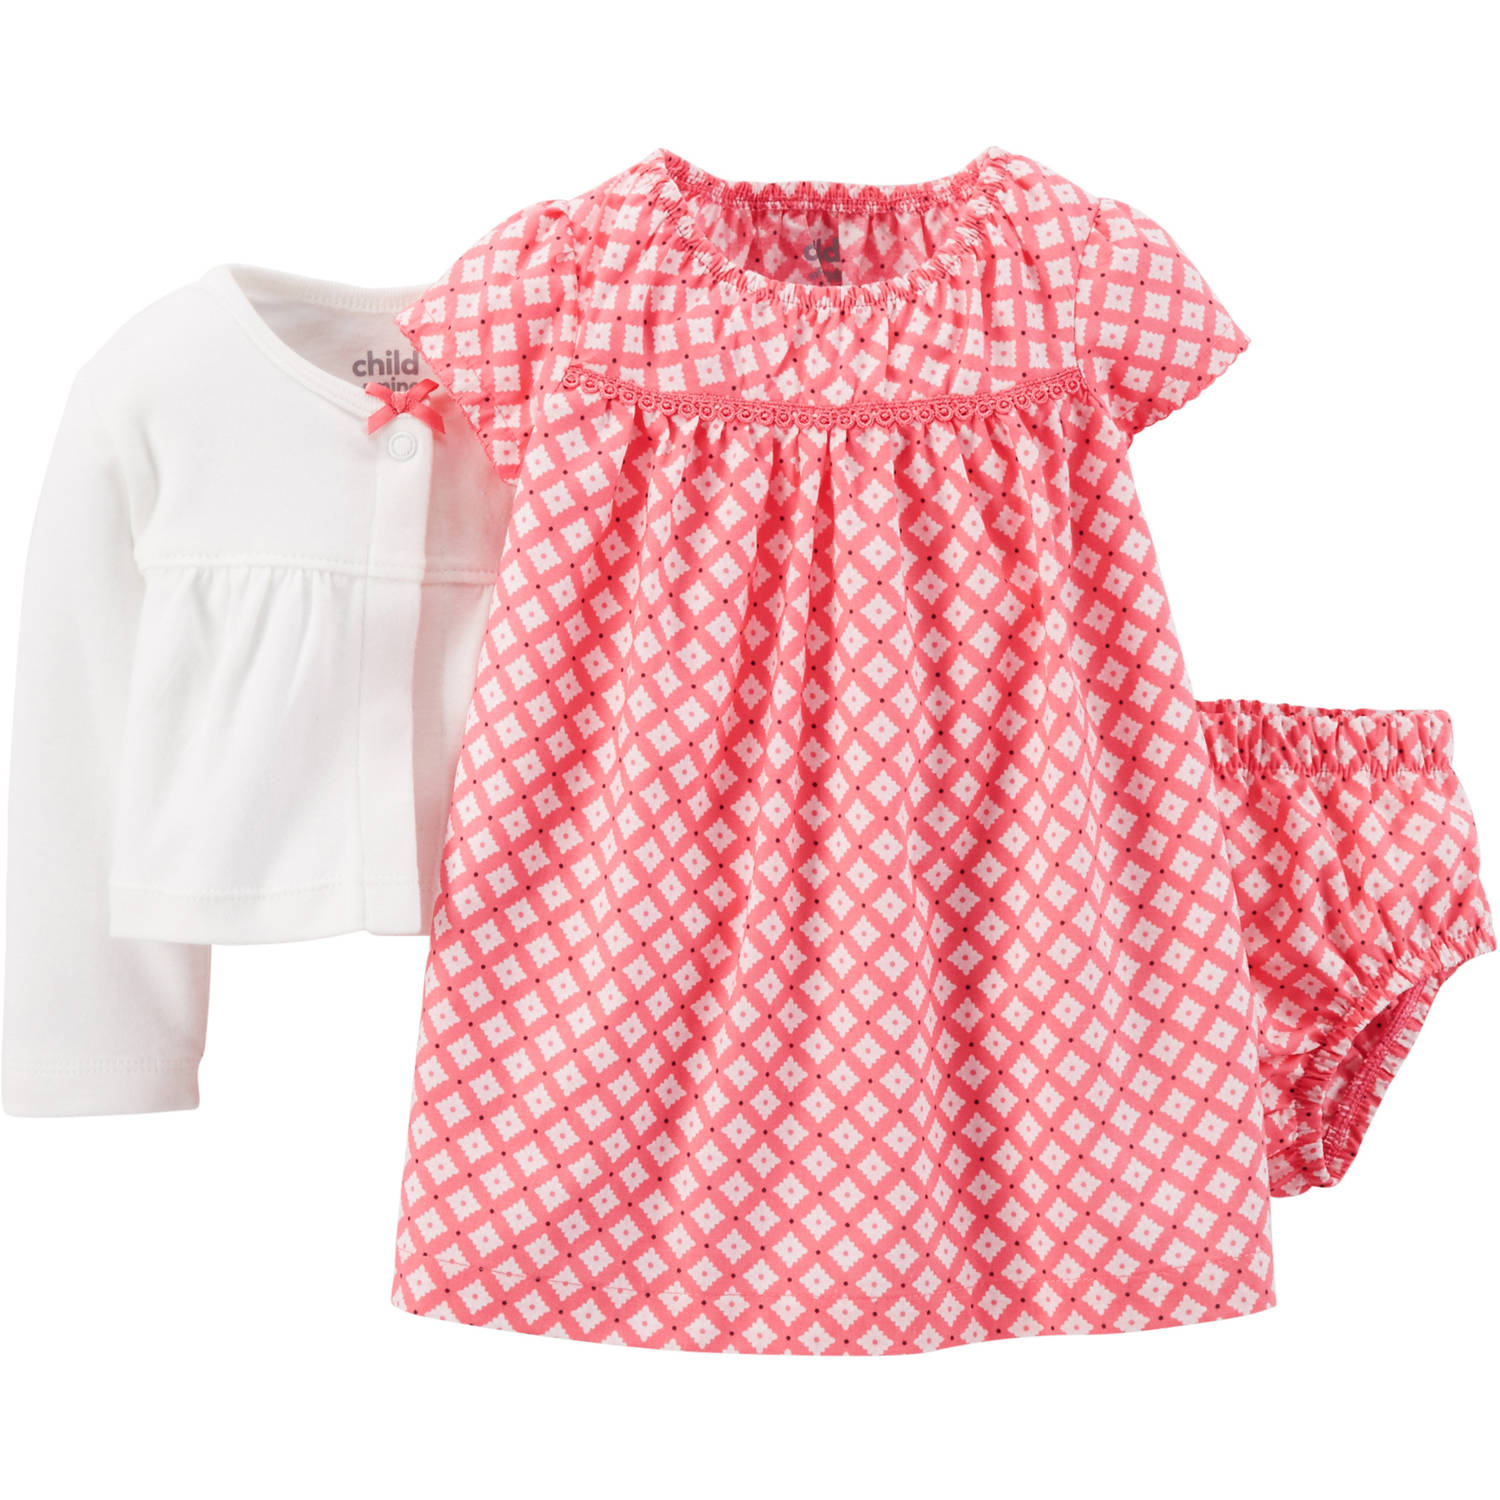 Child Mine by Carter s Newborn Baby Girl Dress and